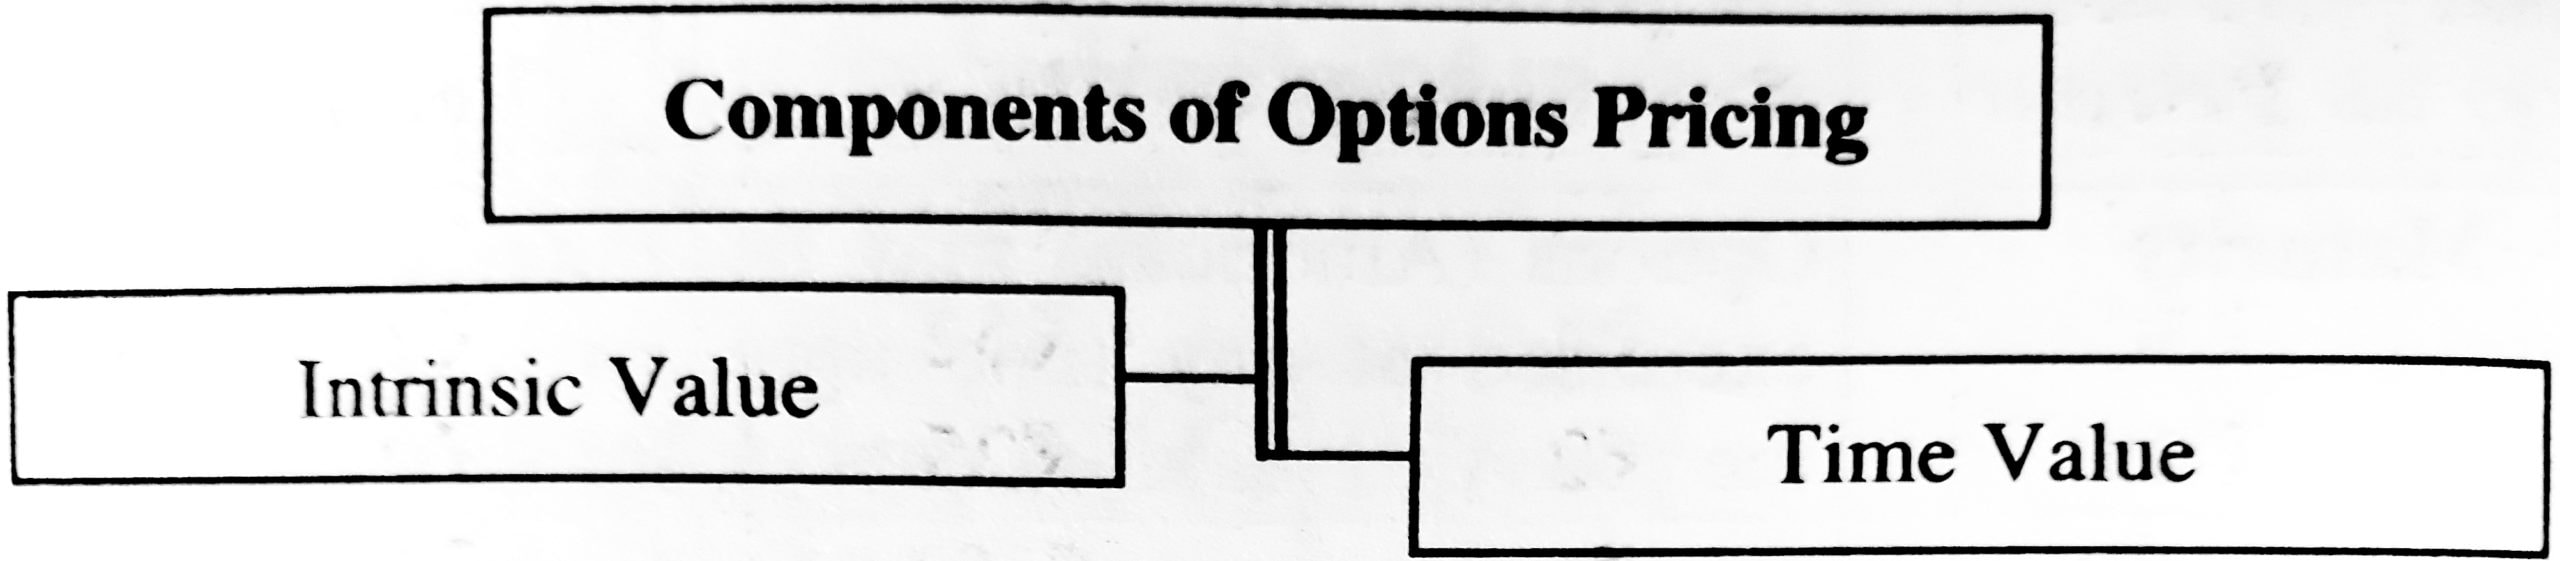 Components of Options Pricing